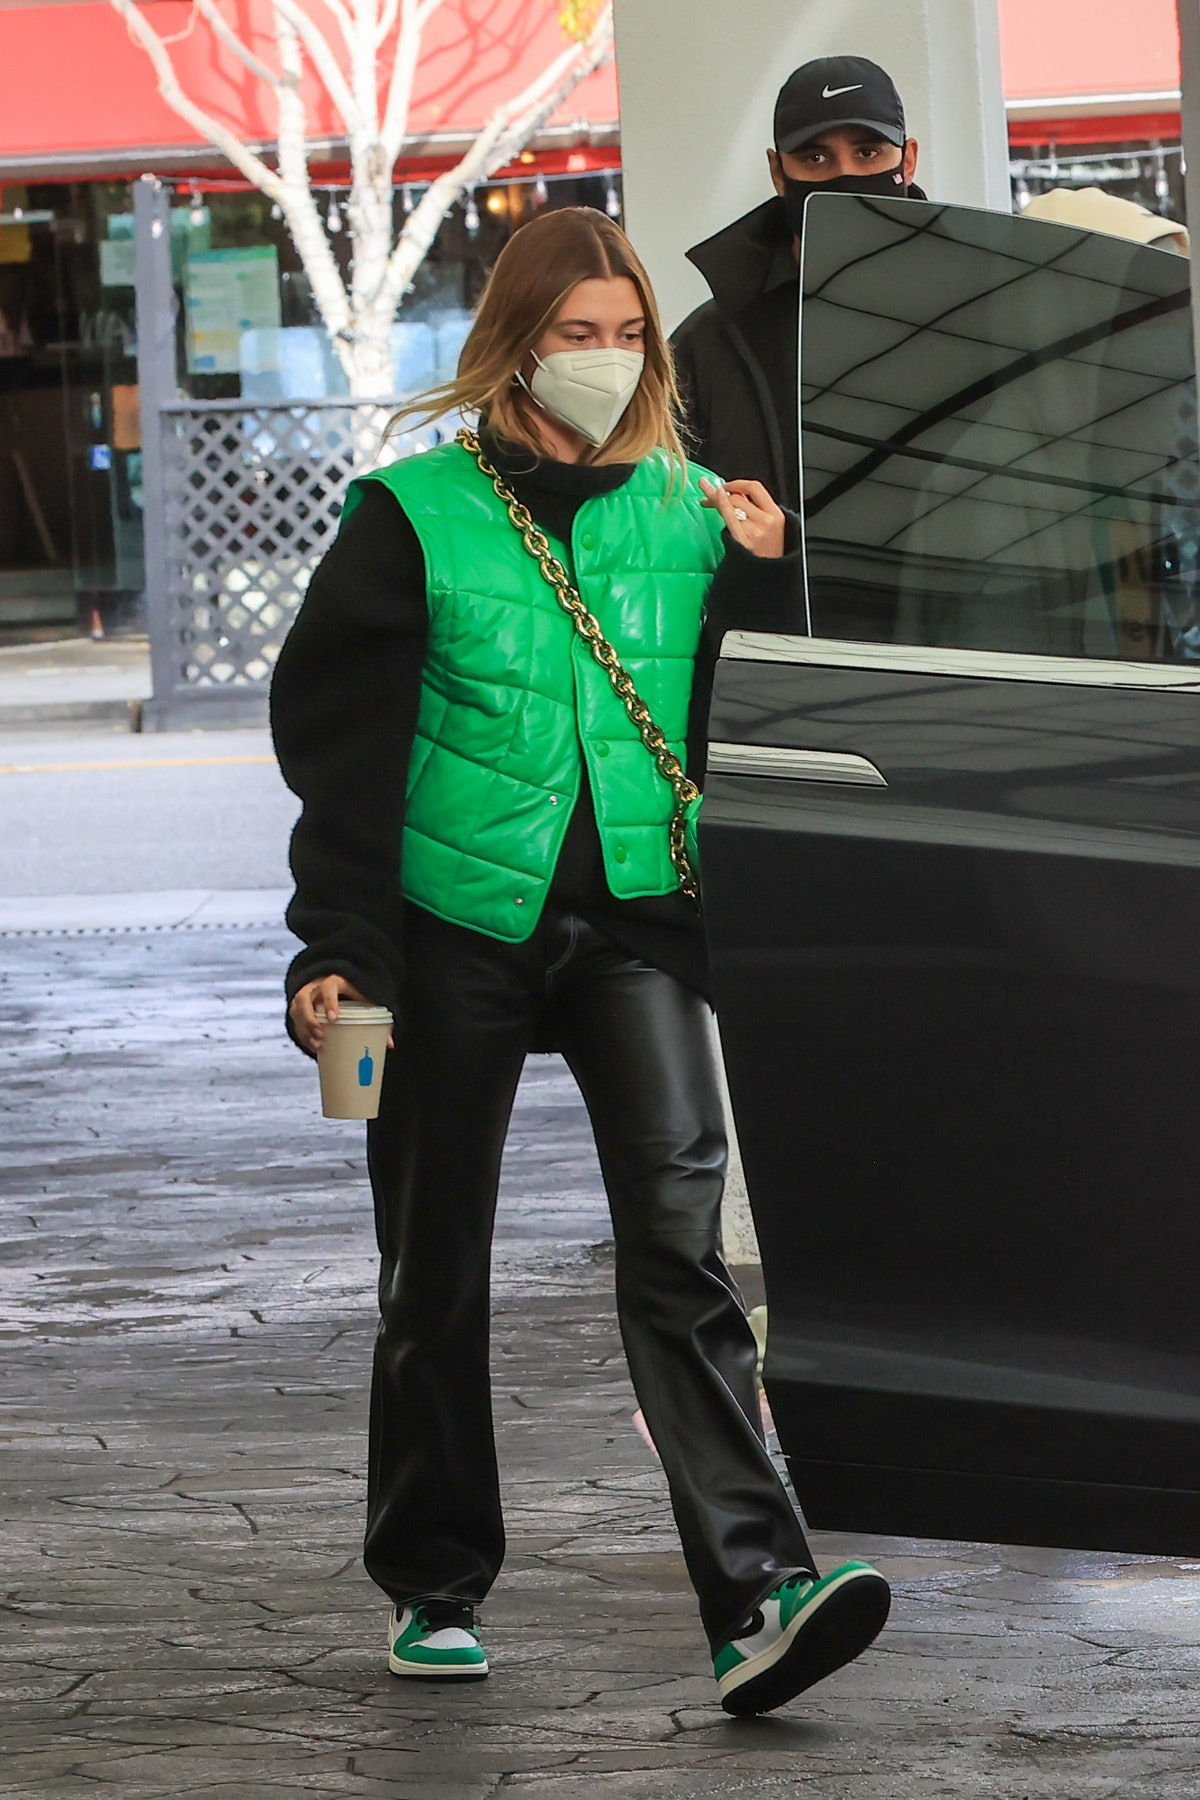 Hailey Bieber in Los Angeles, California in January 2021.